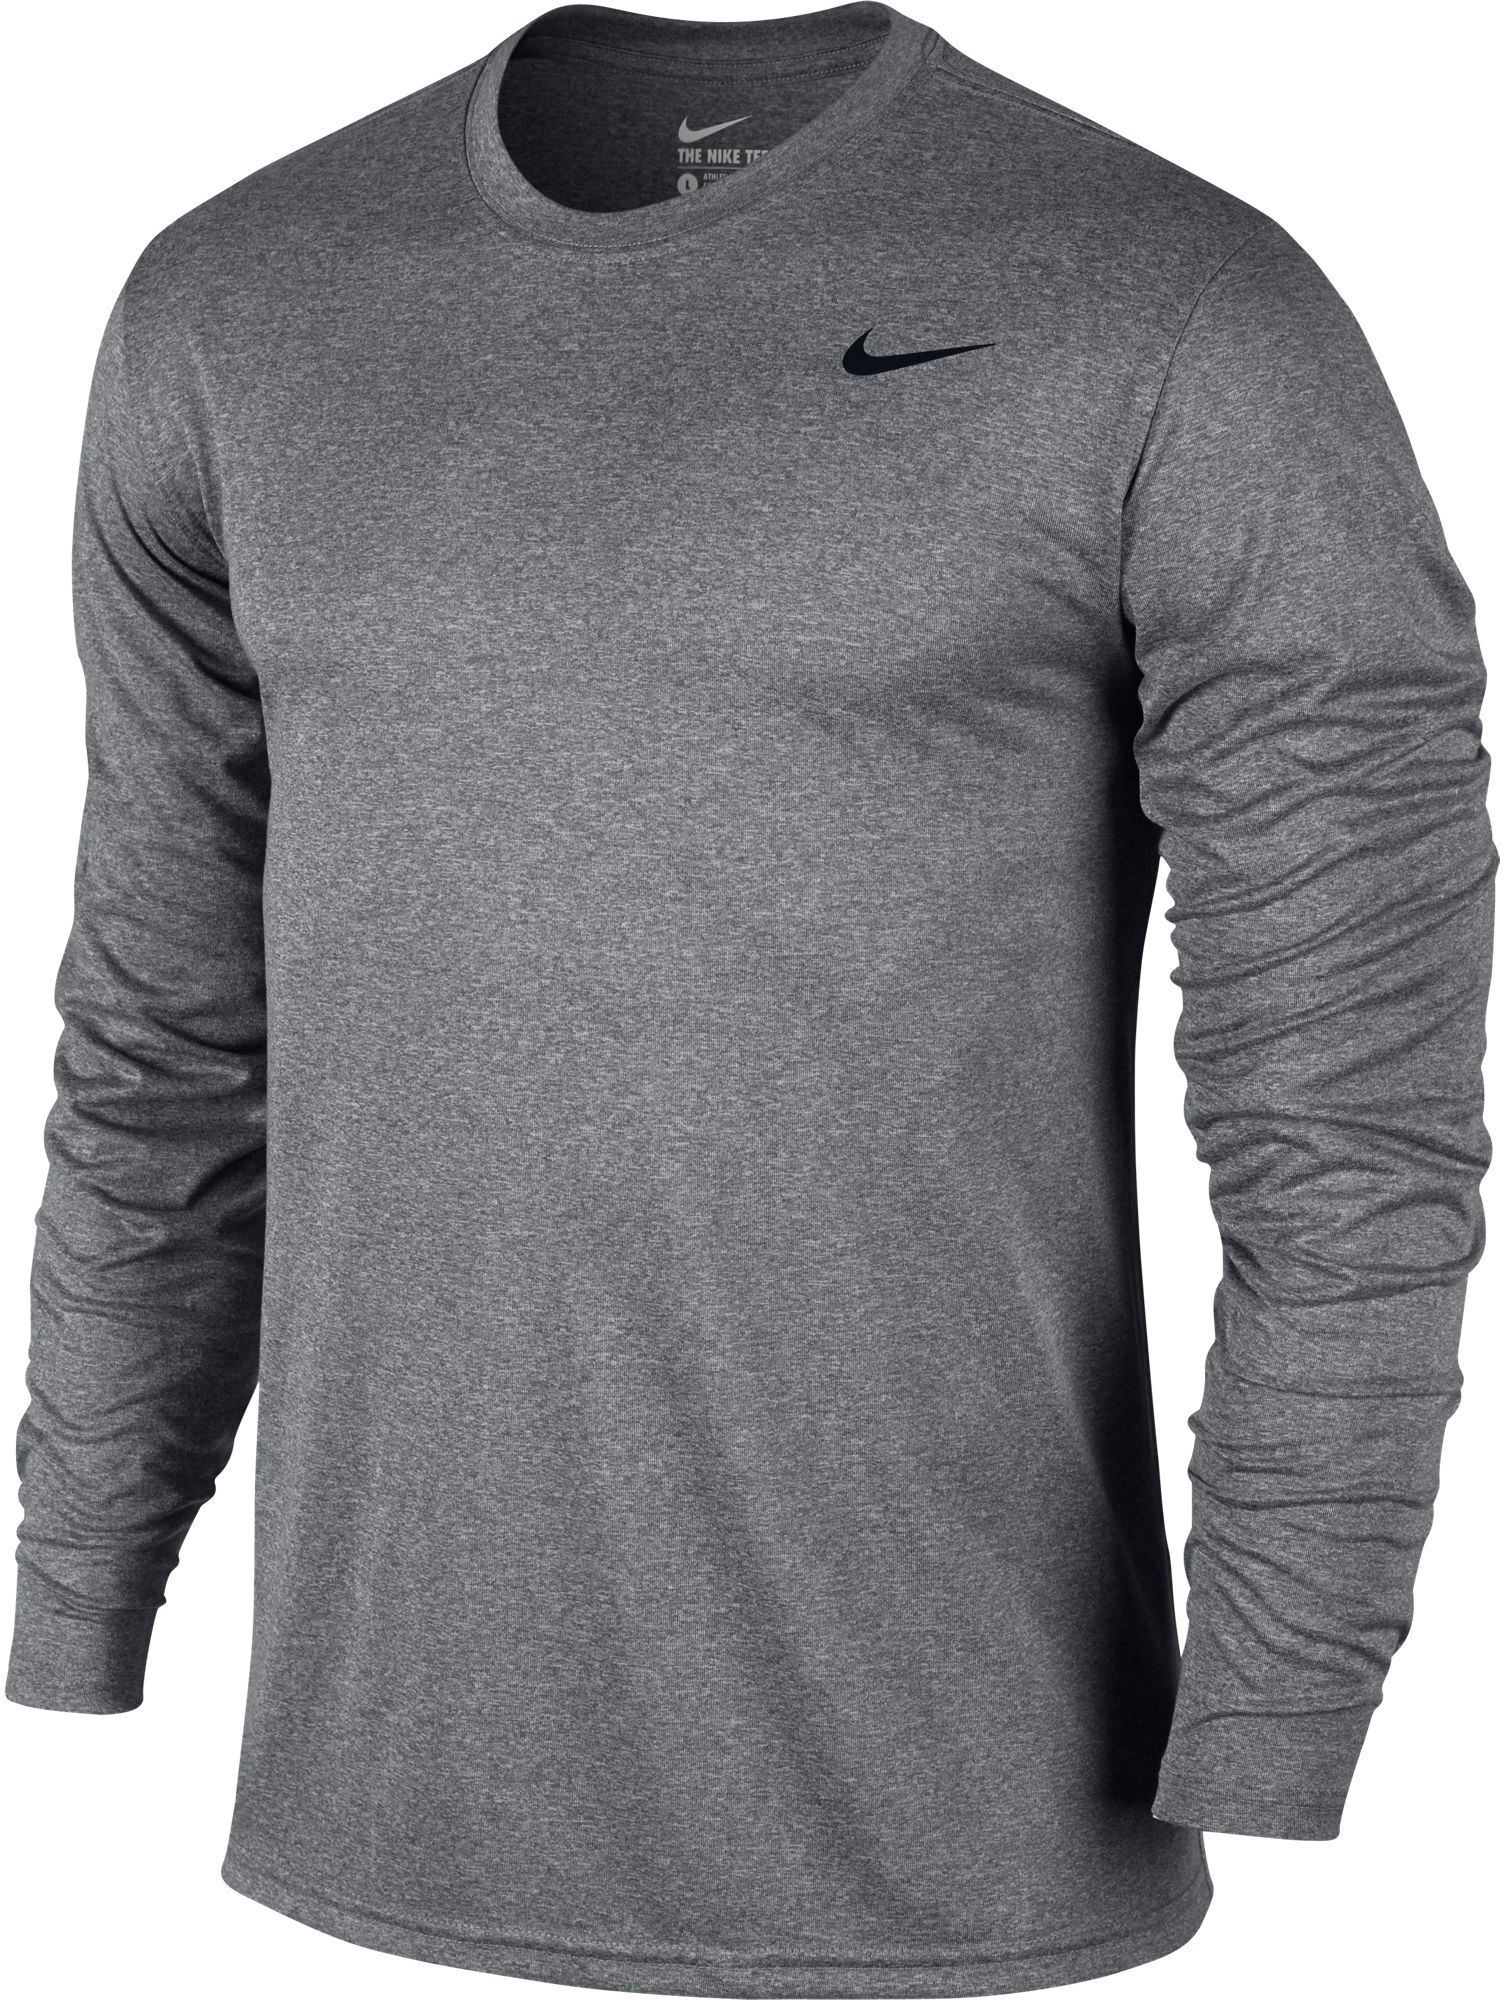 Nike Men's Legend Long Sleeve Shirt| DICK'S Sporting Goods